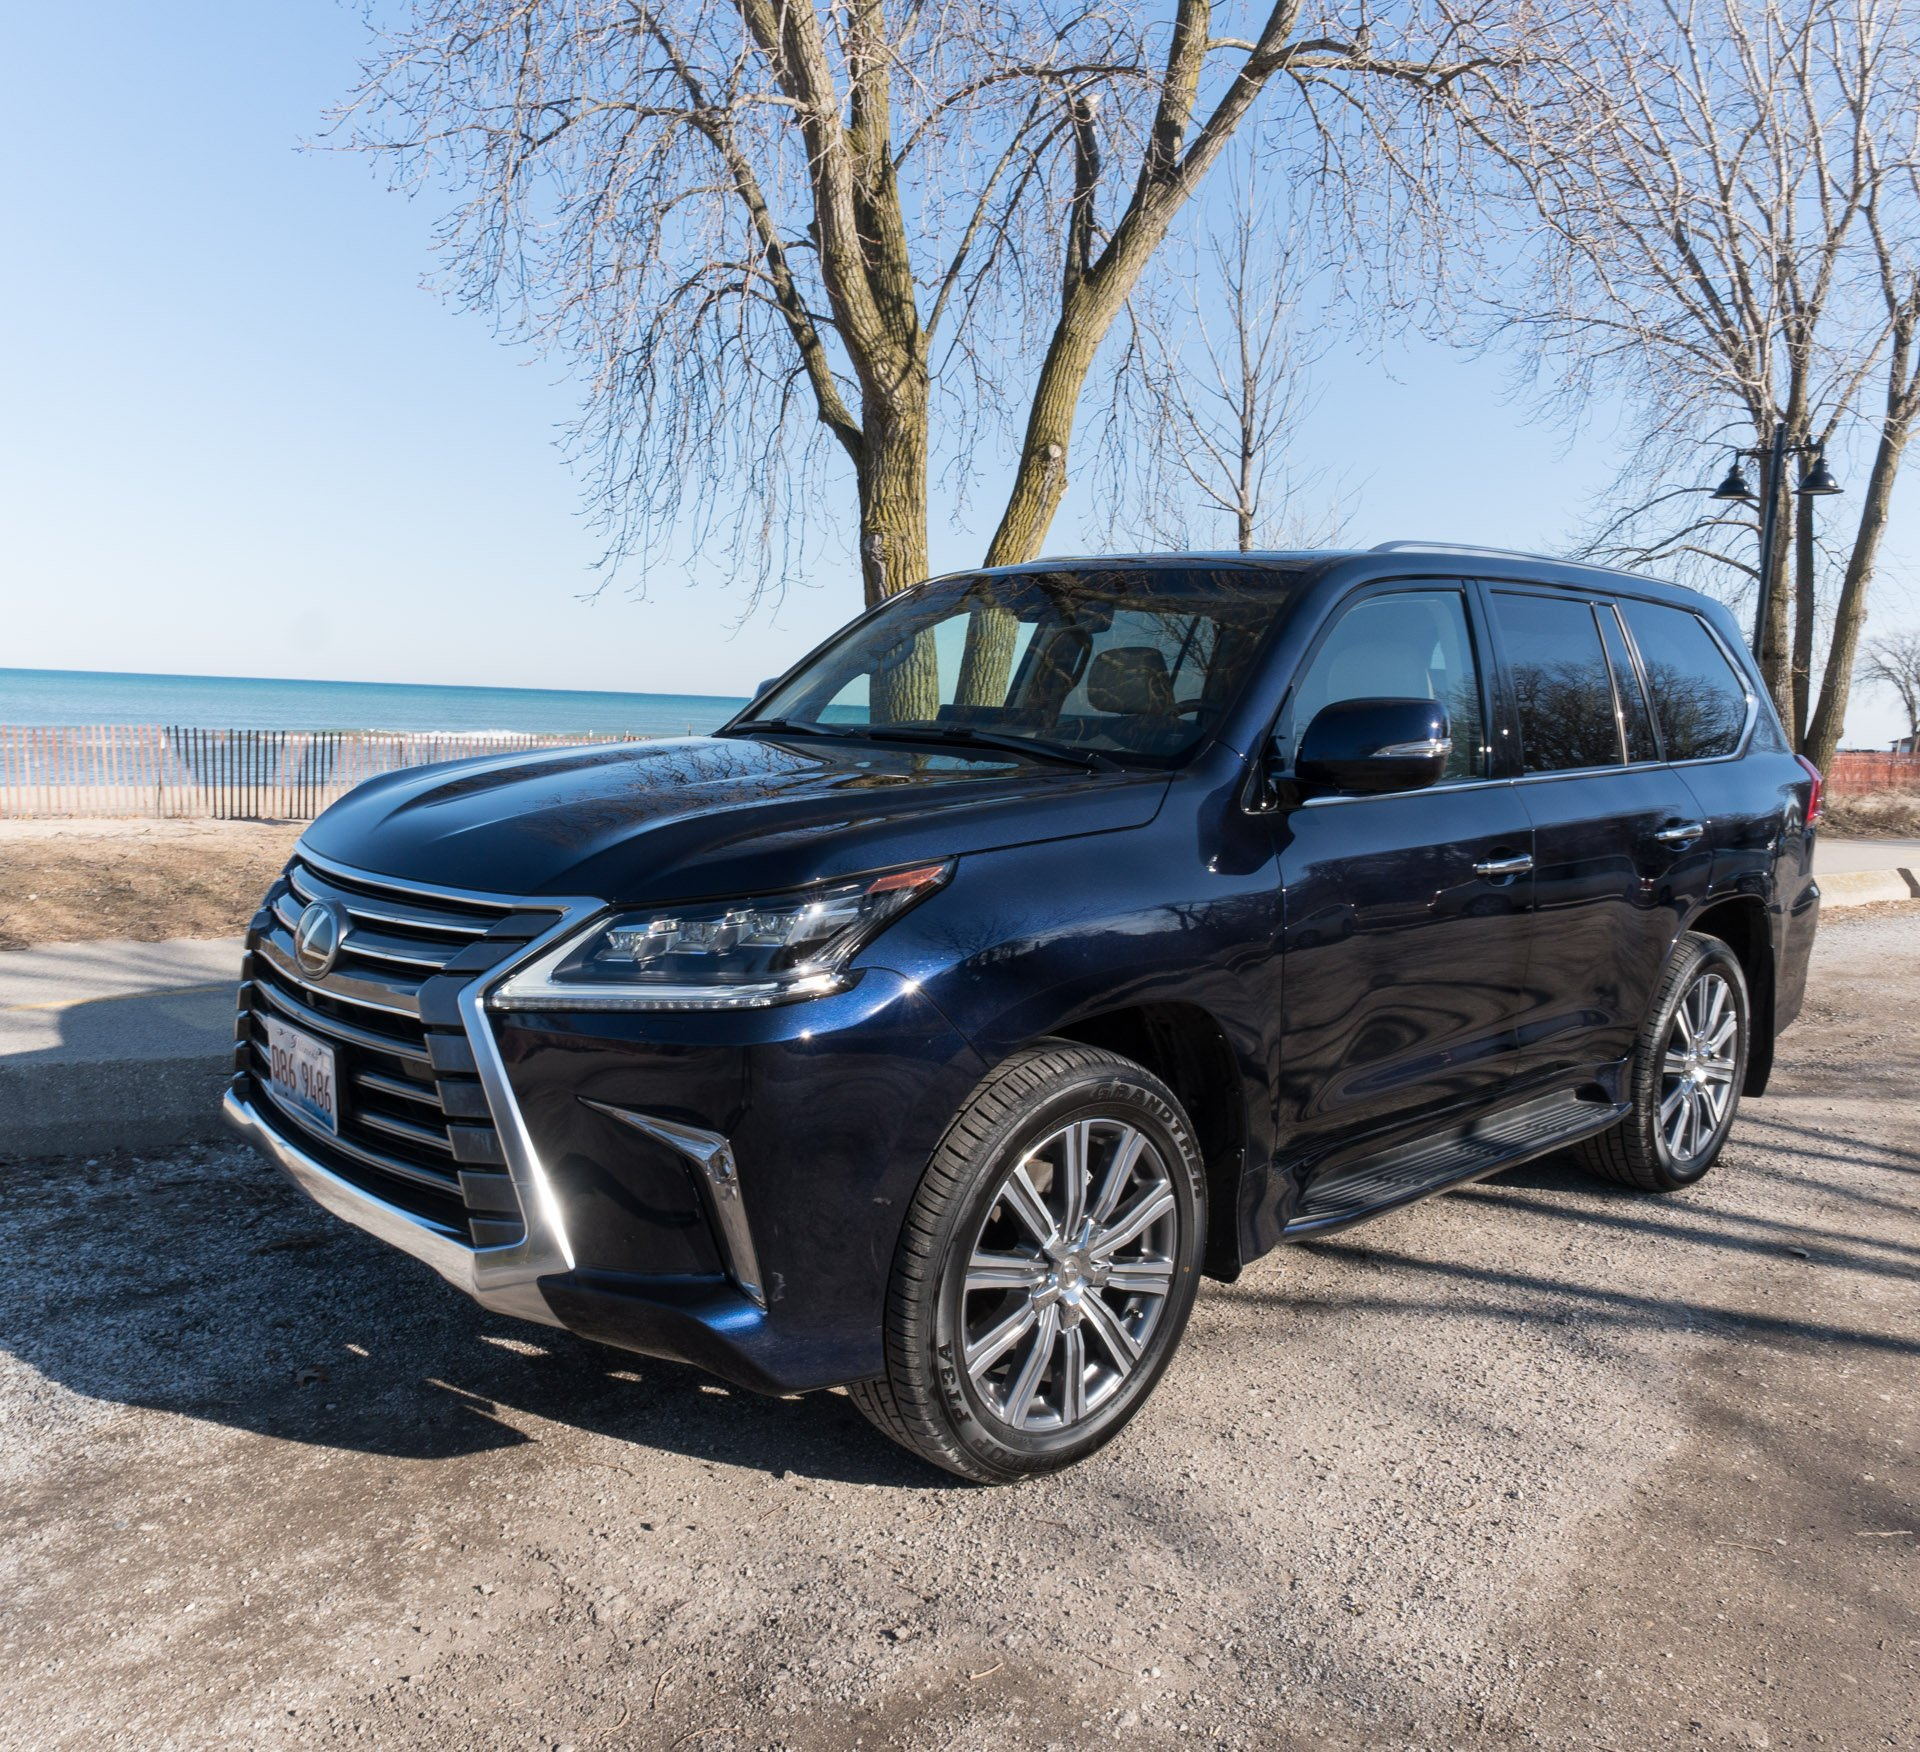 2017 lexus lx 570 review 95 octane. Black Bedroom Furniture Sets. Home Design Ideas